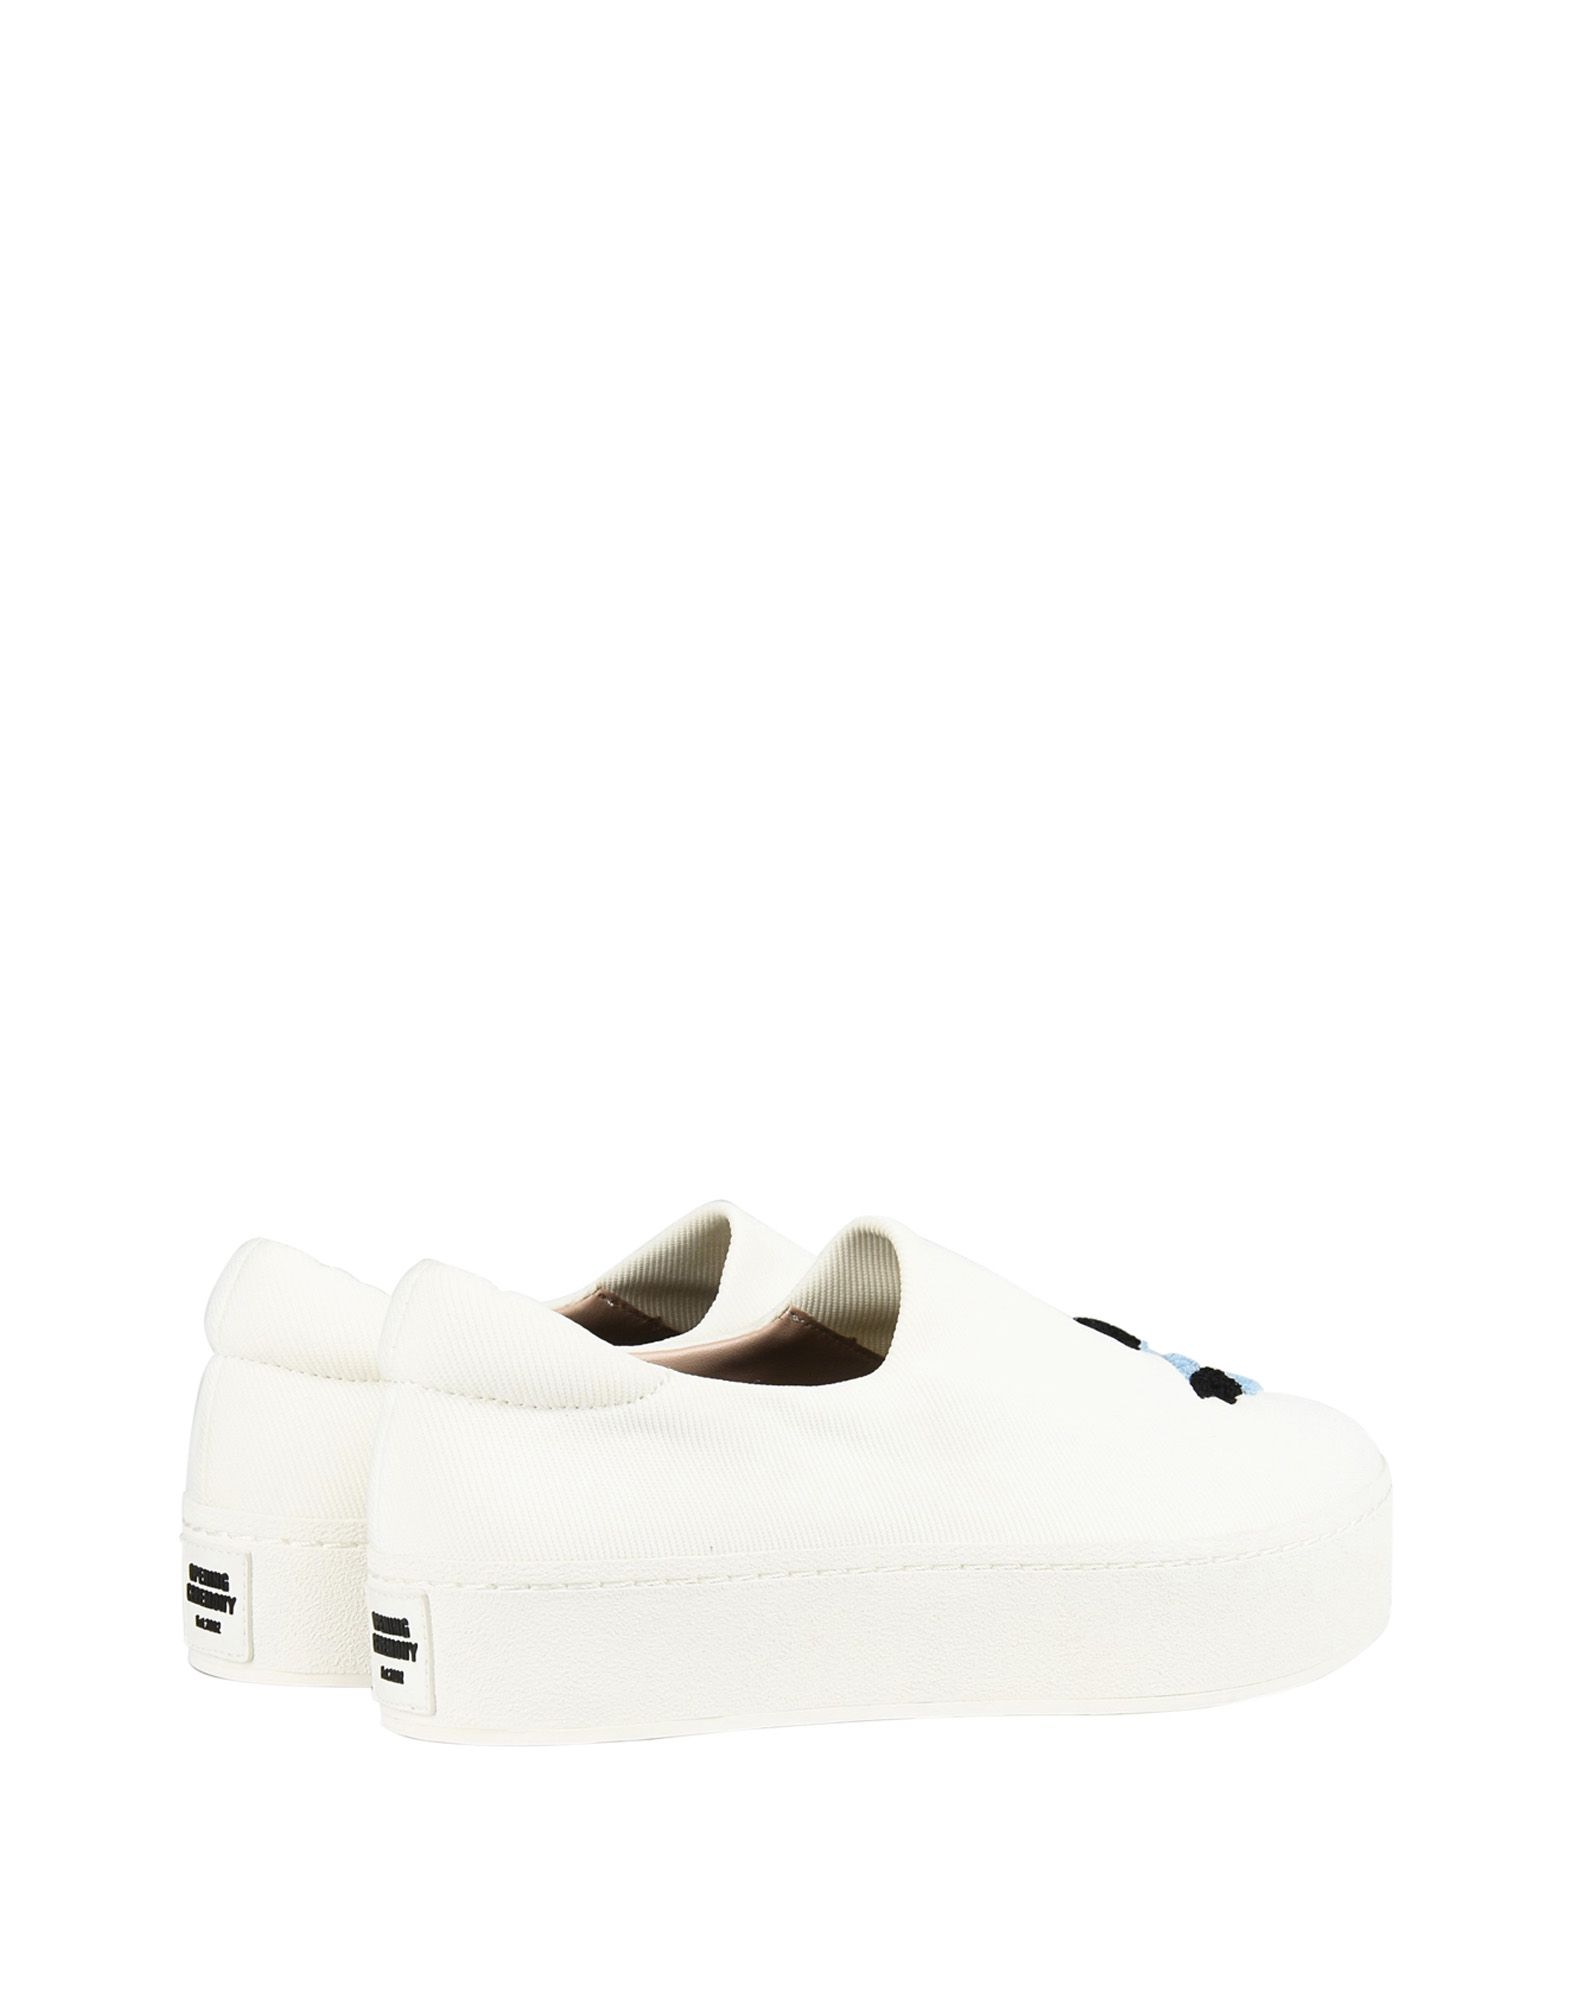 Opening Opening Opening Ceremony Sneakers Damen  11173558TA 339736